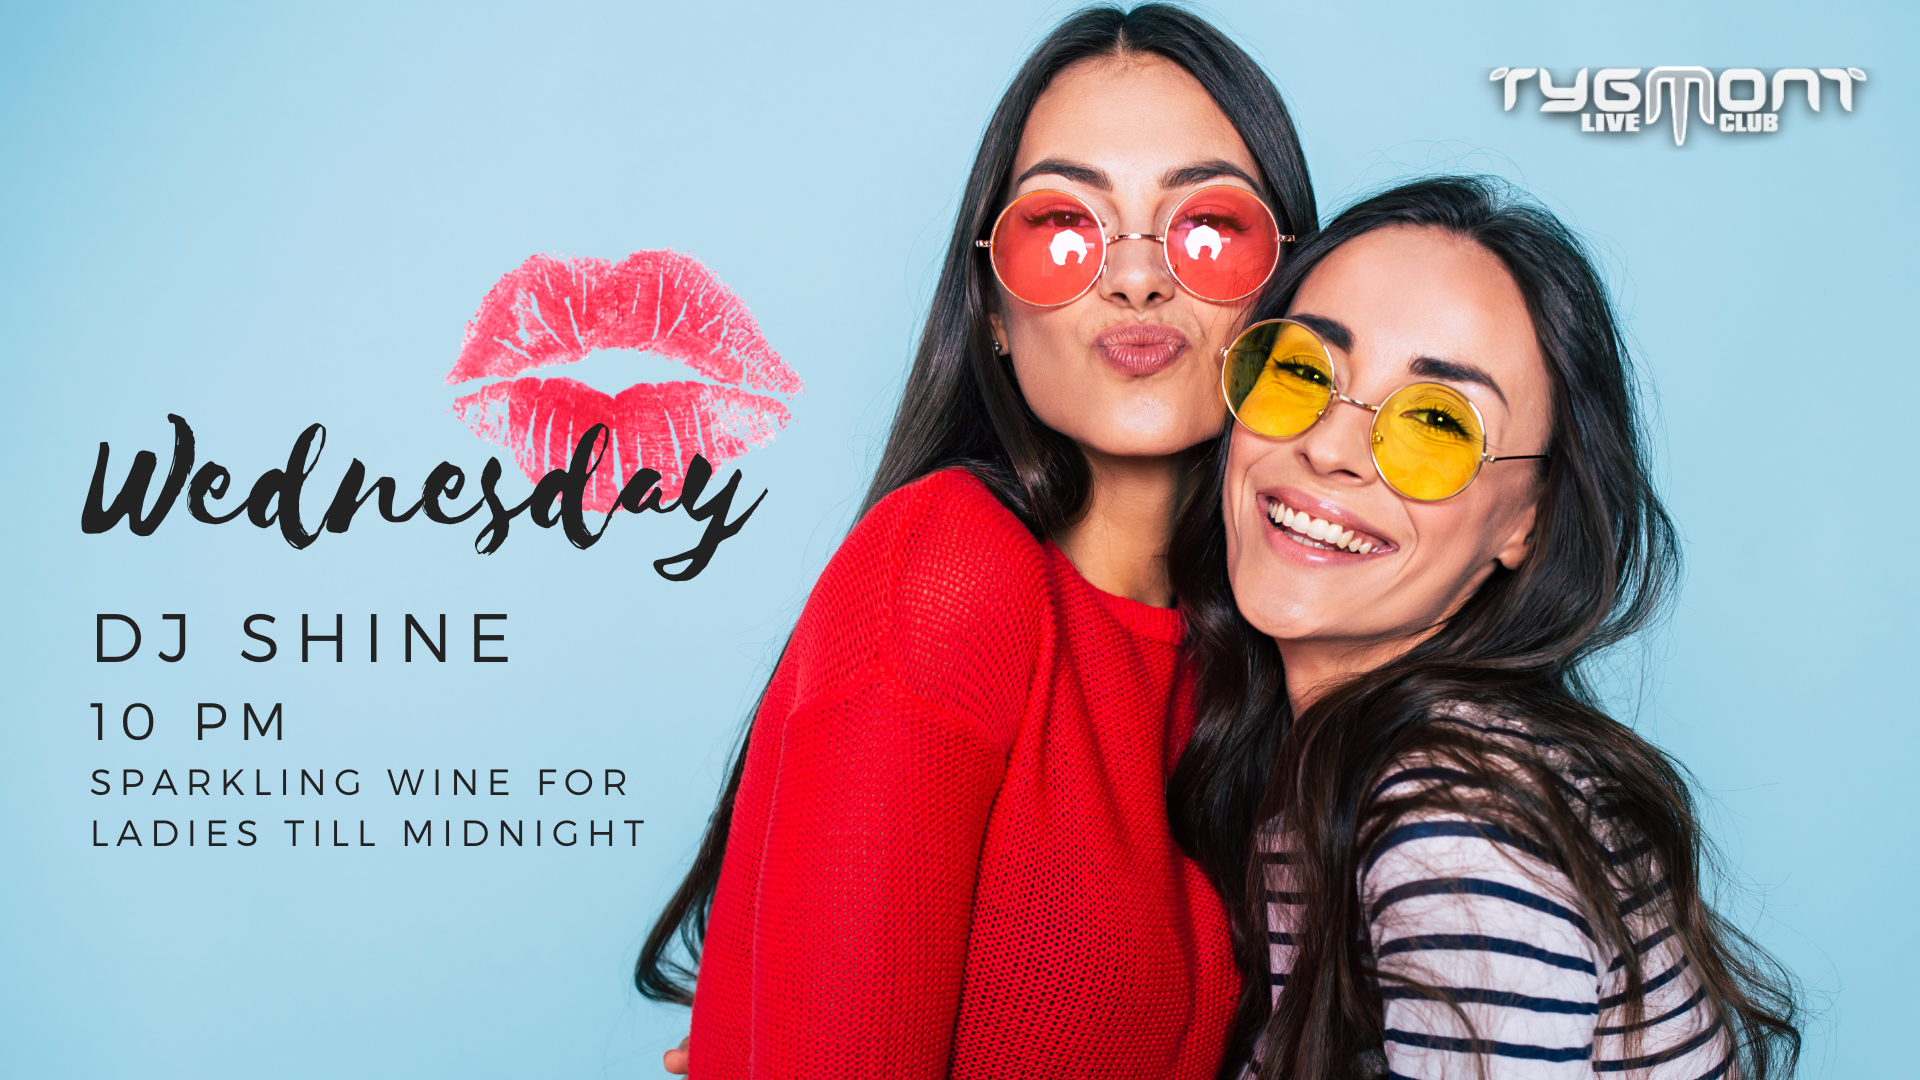 Lips Sealed Surprise Party Facebook Event Cover